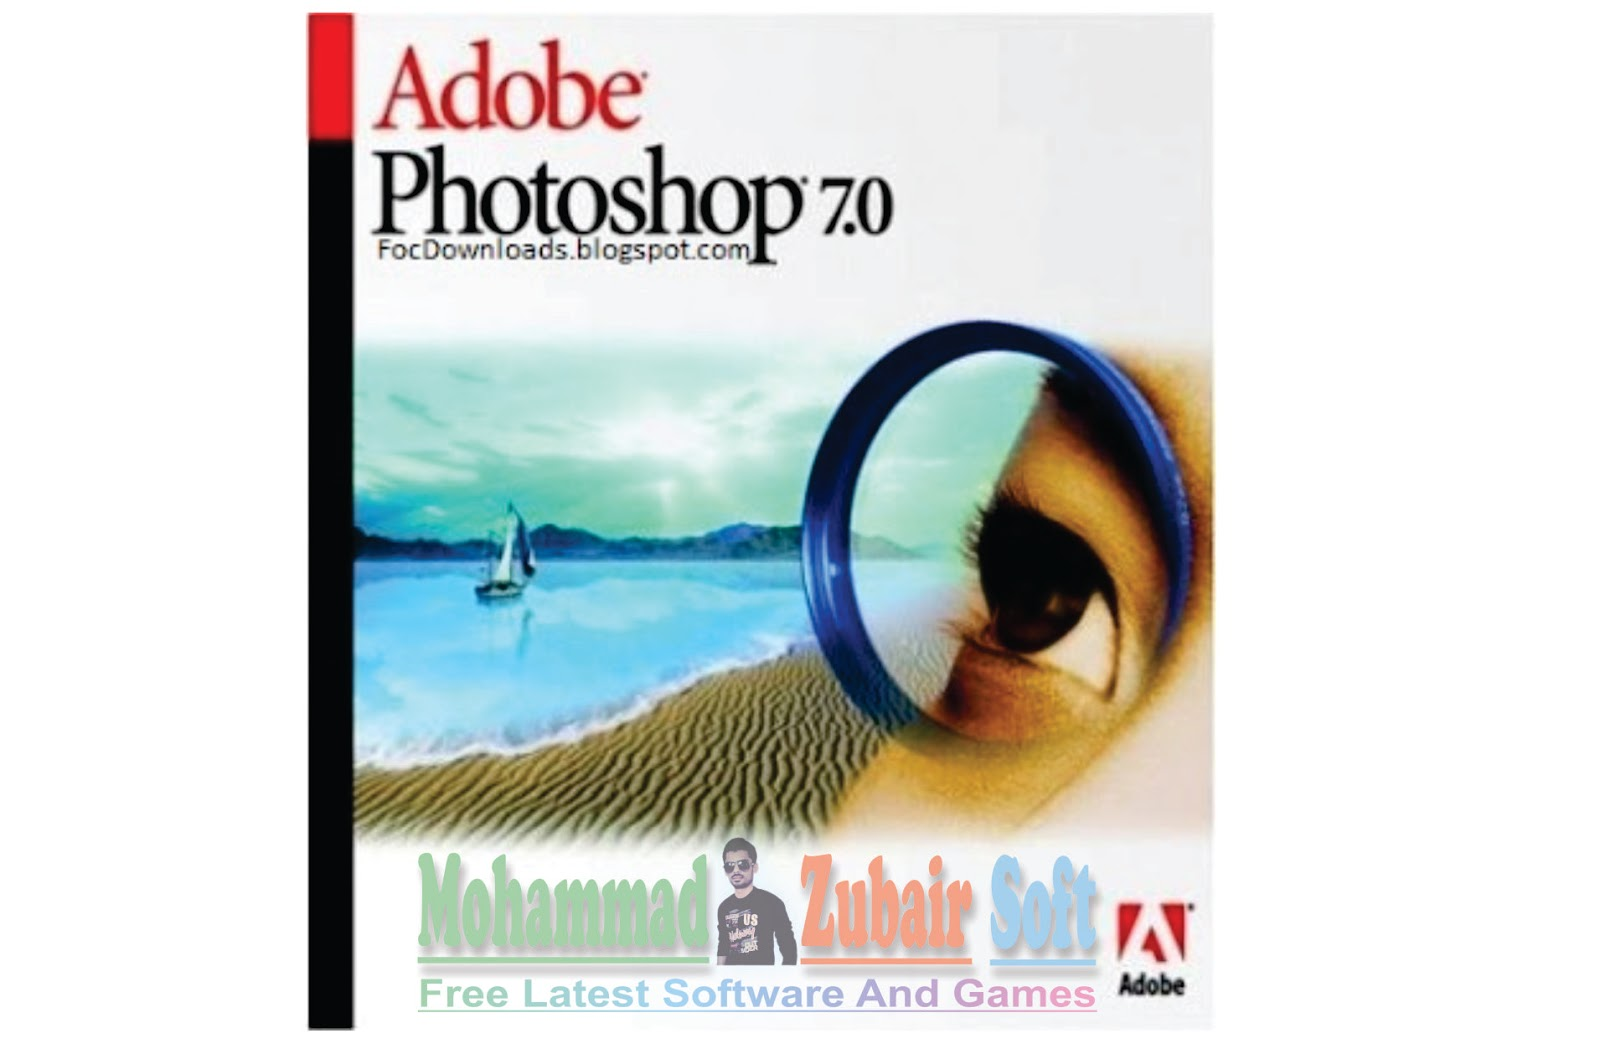 free download adobe photoshop 7.0 for windows 8